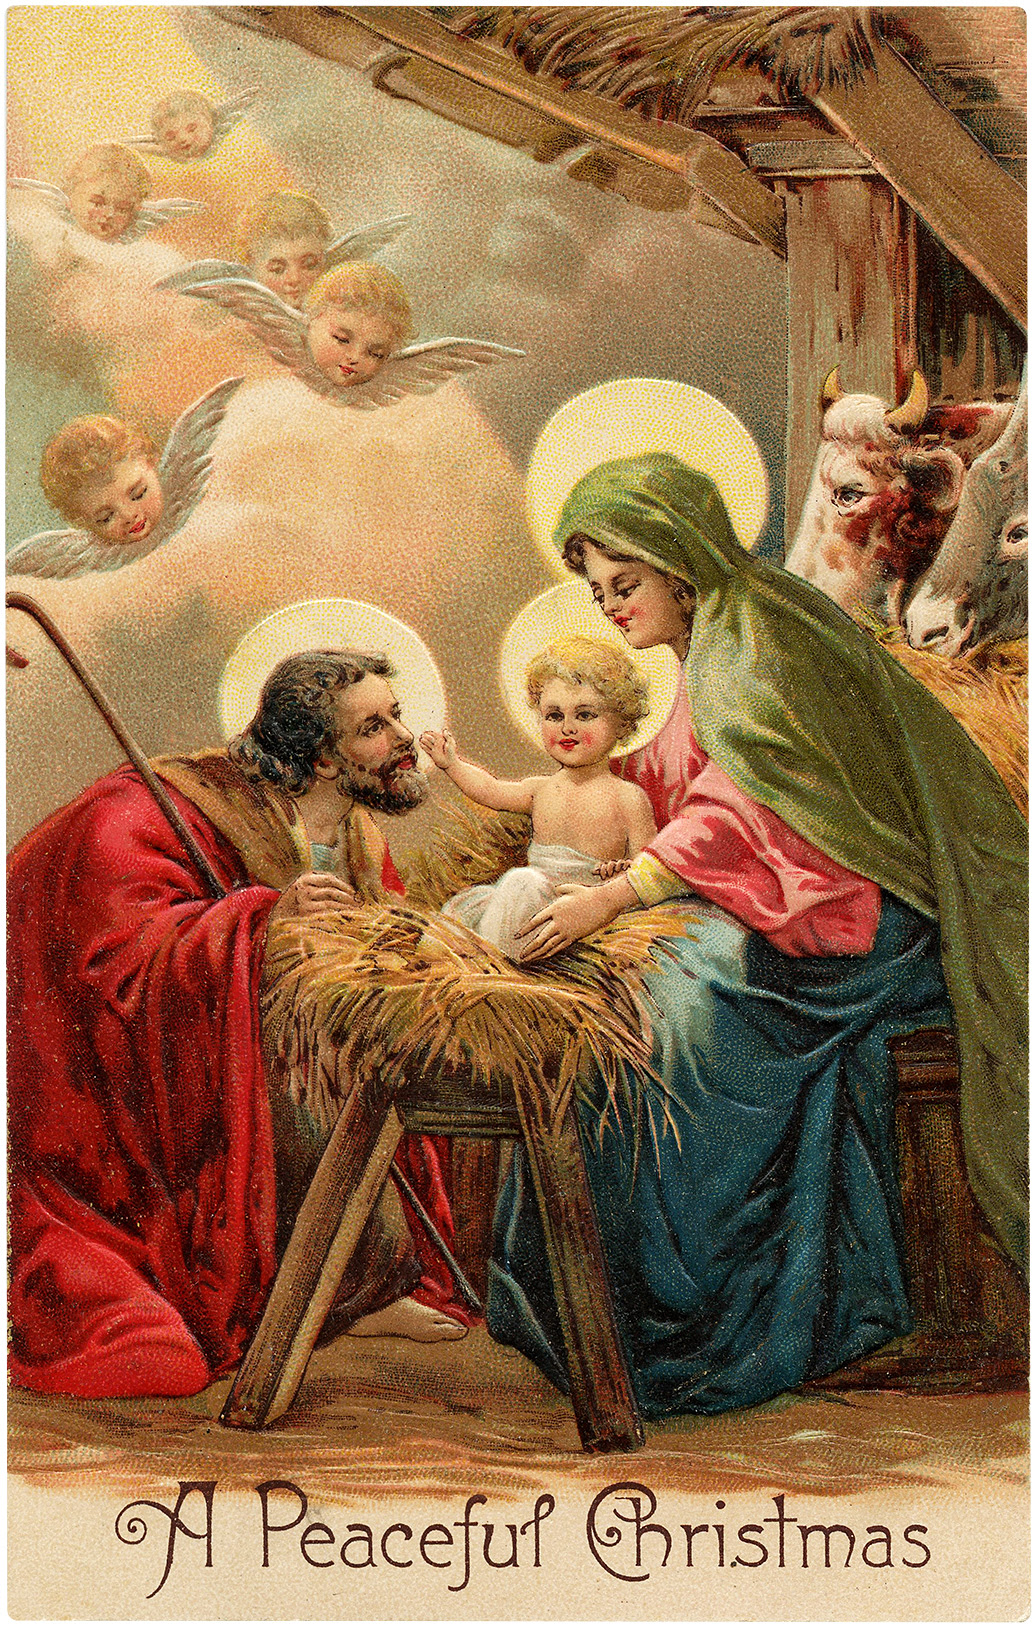 Vintage Peaceful Christmas Nativity Image! - The Graphics ...